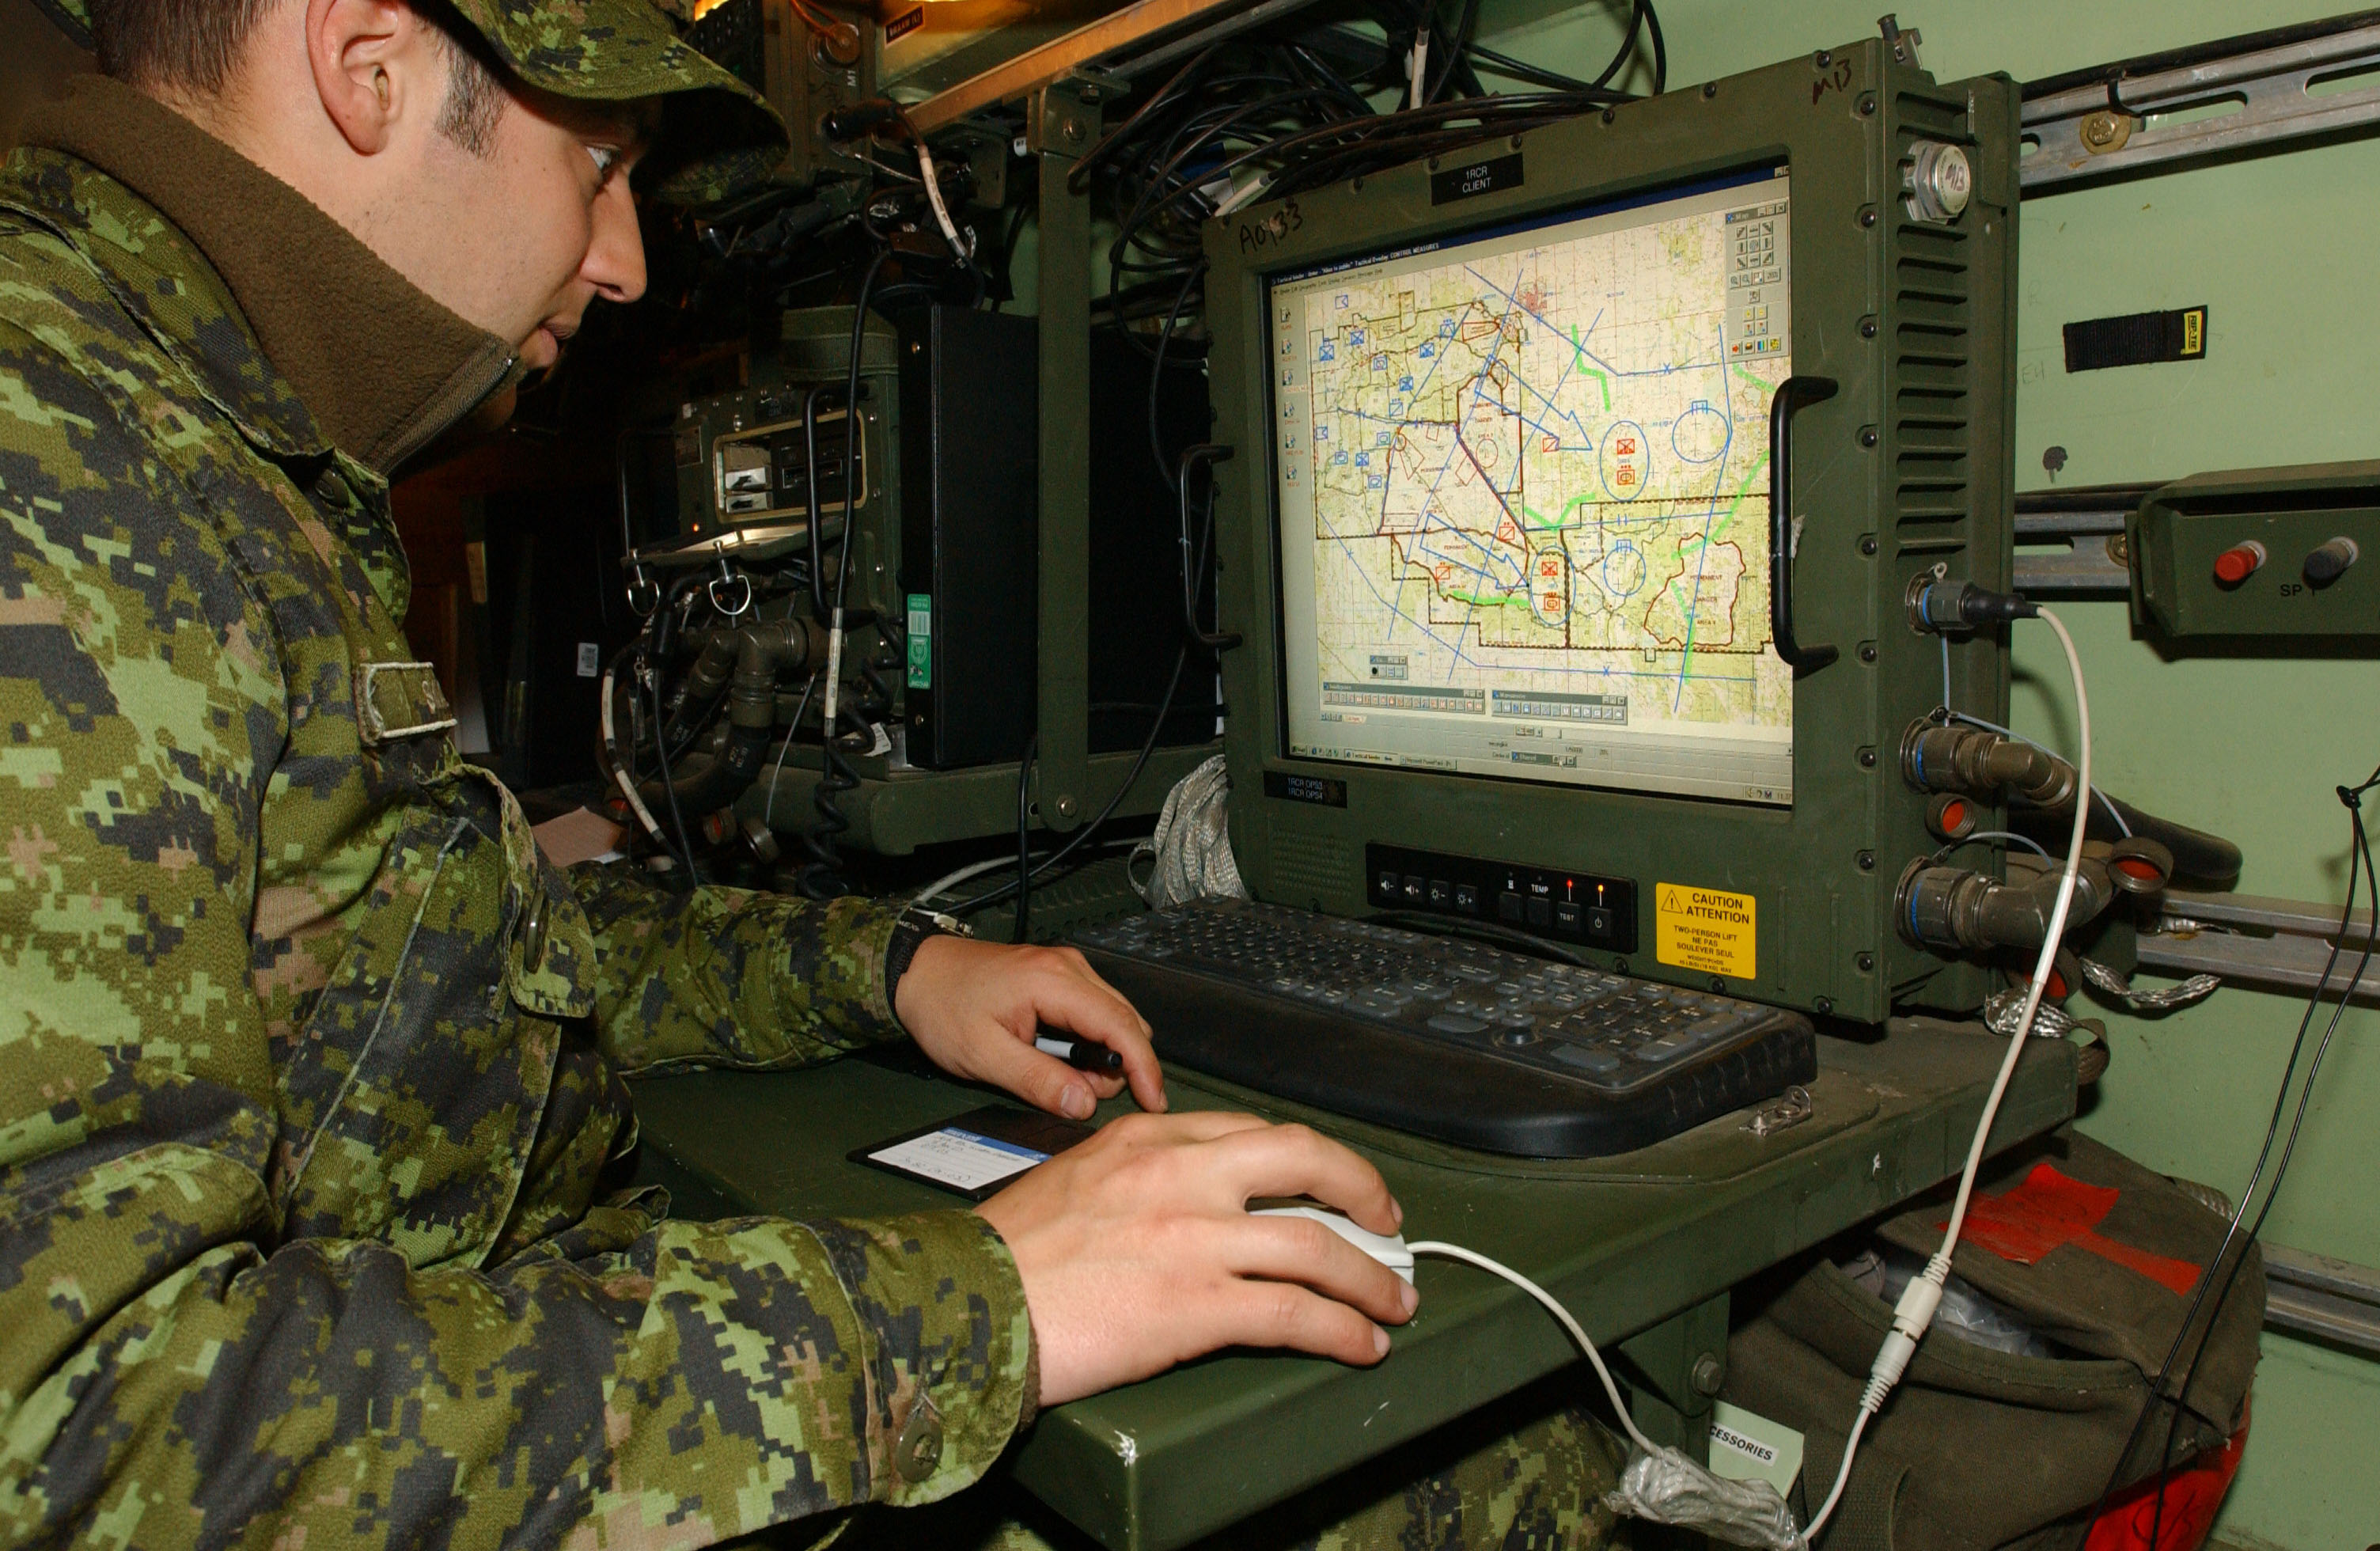 April 18, 2003